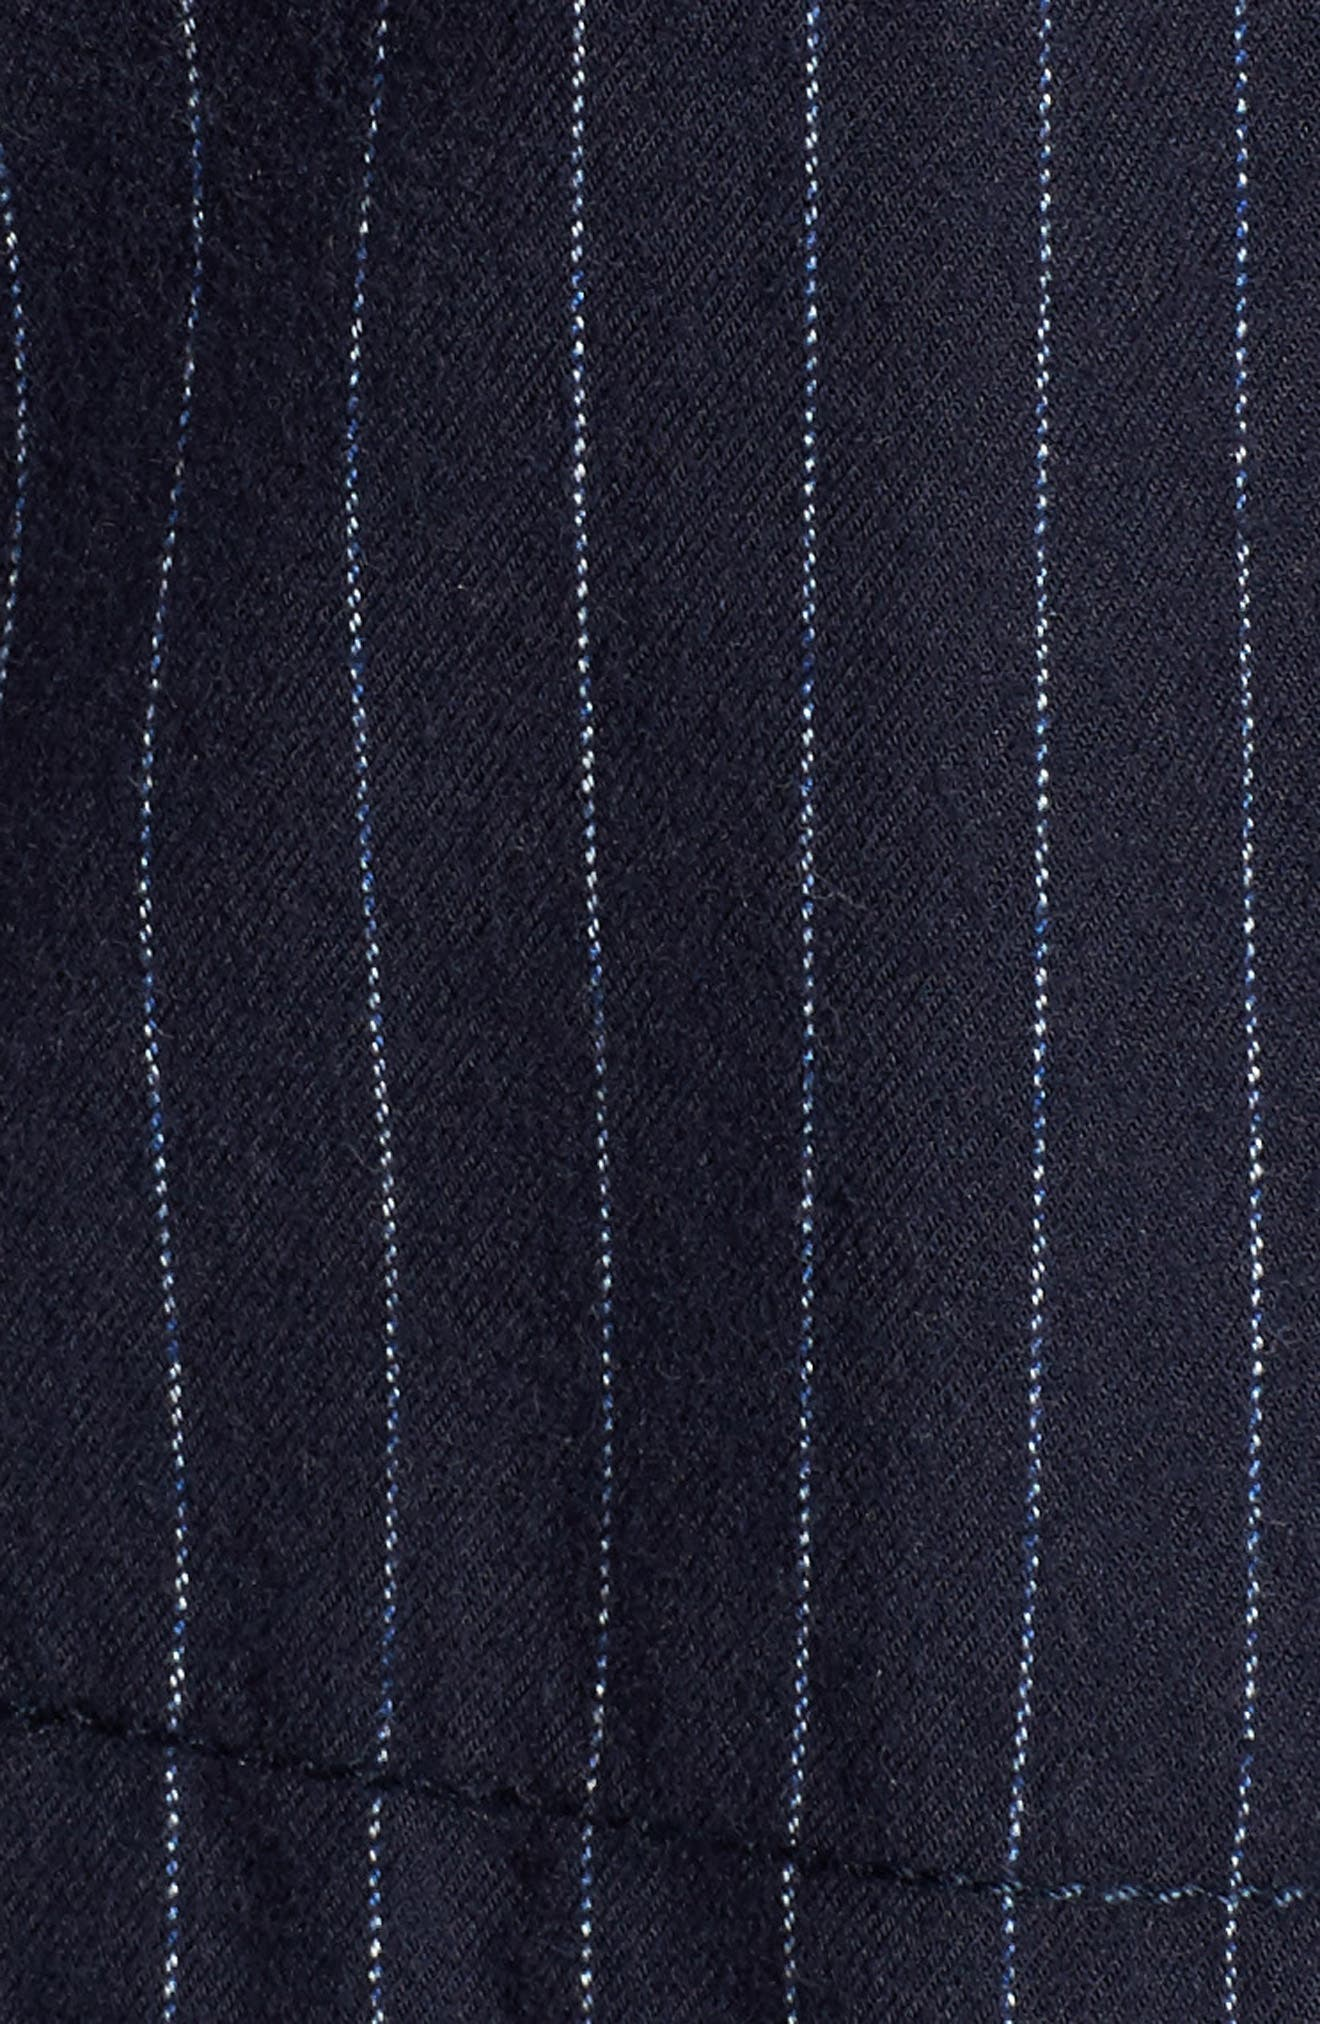 Pinstripe Utility Jacket,                             Alternate thumbnail 5, color,                             Navy- Ivory Pinstripe